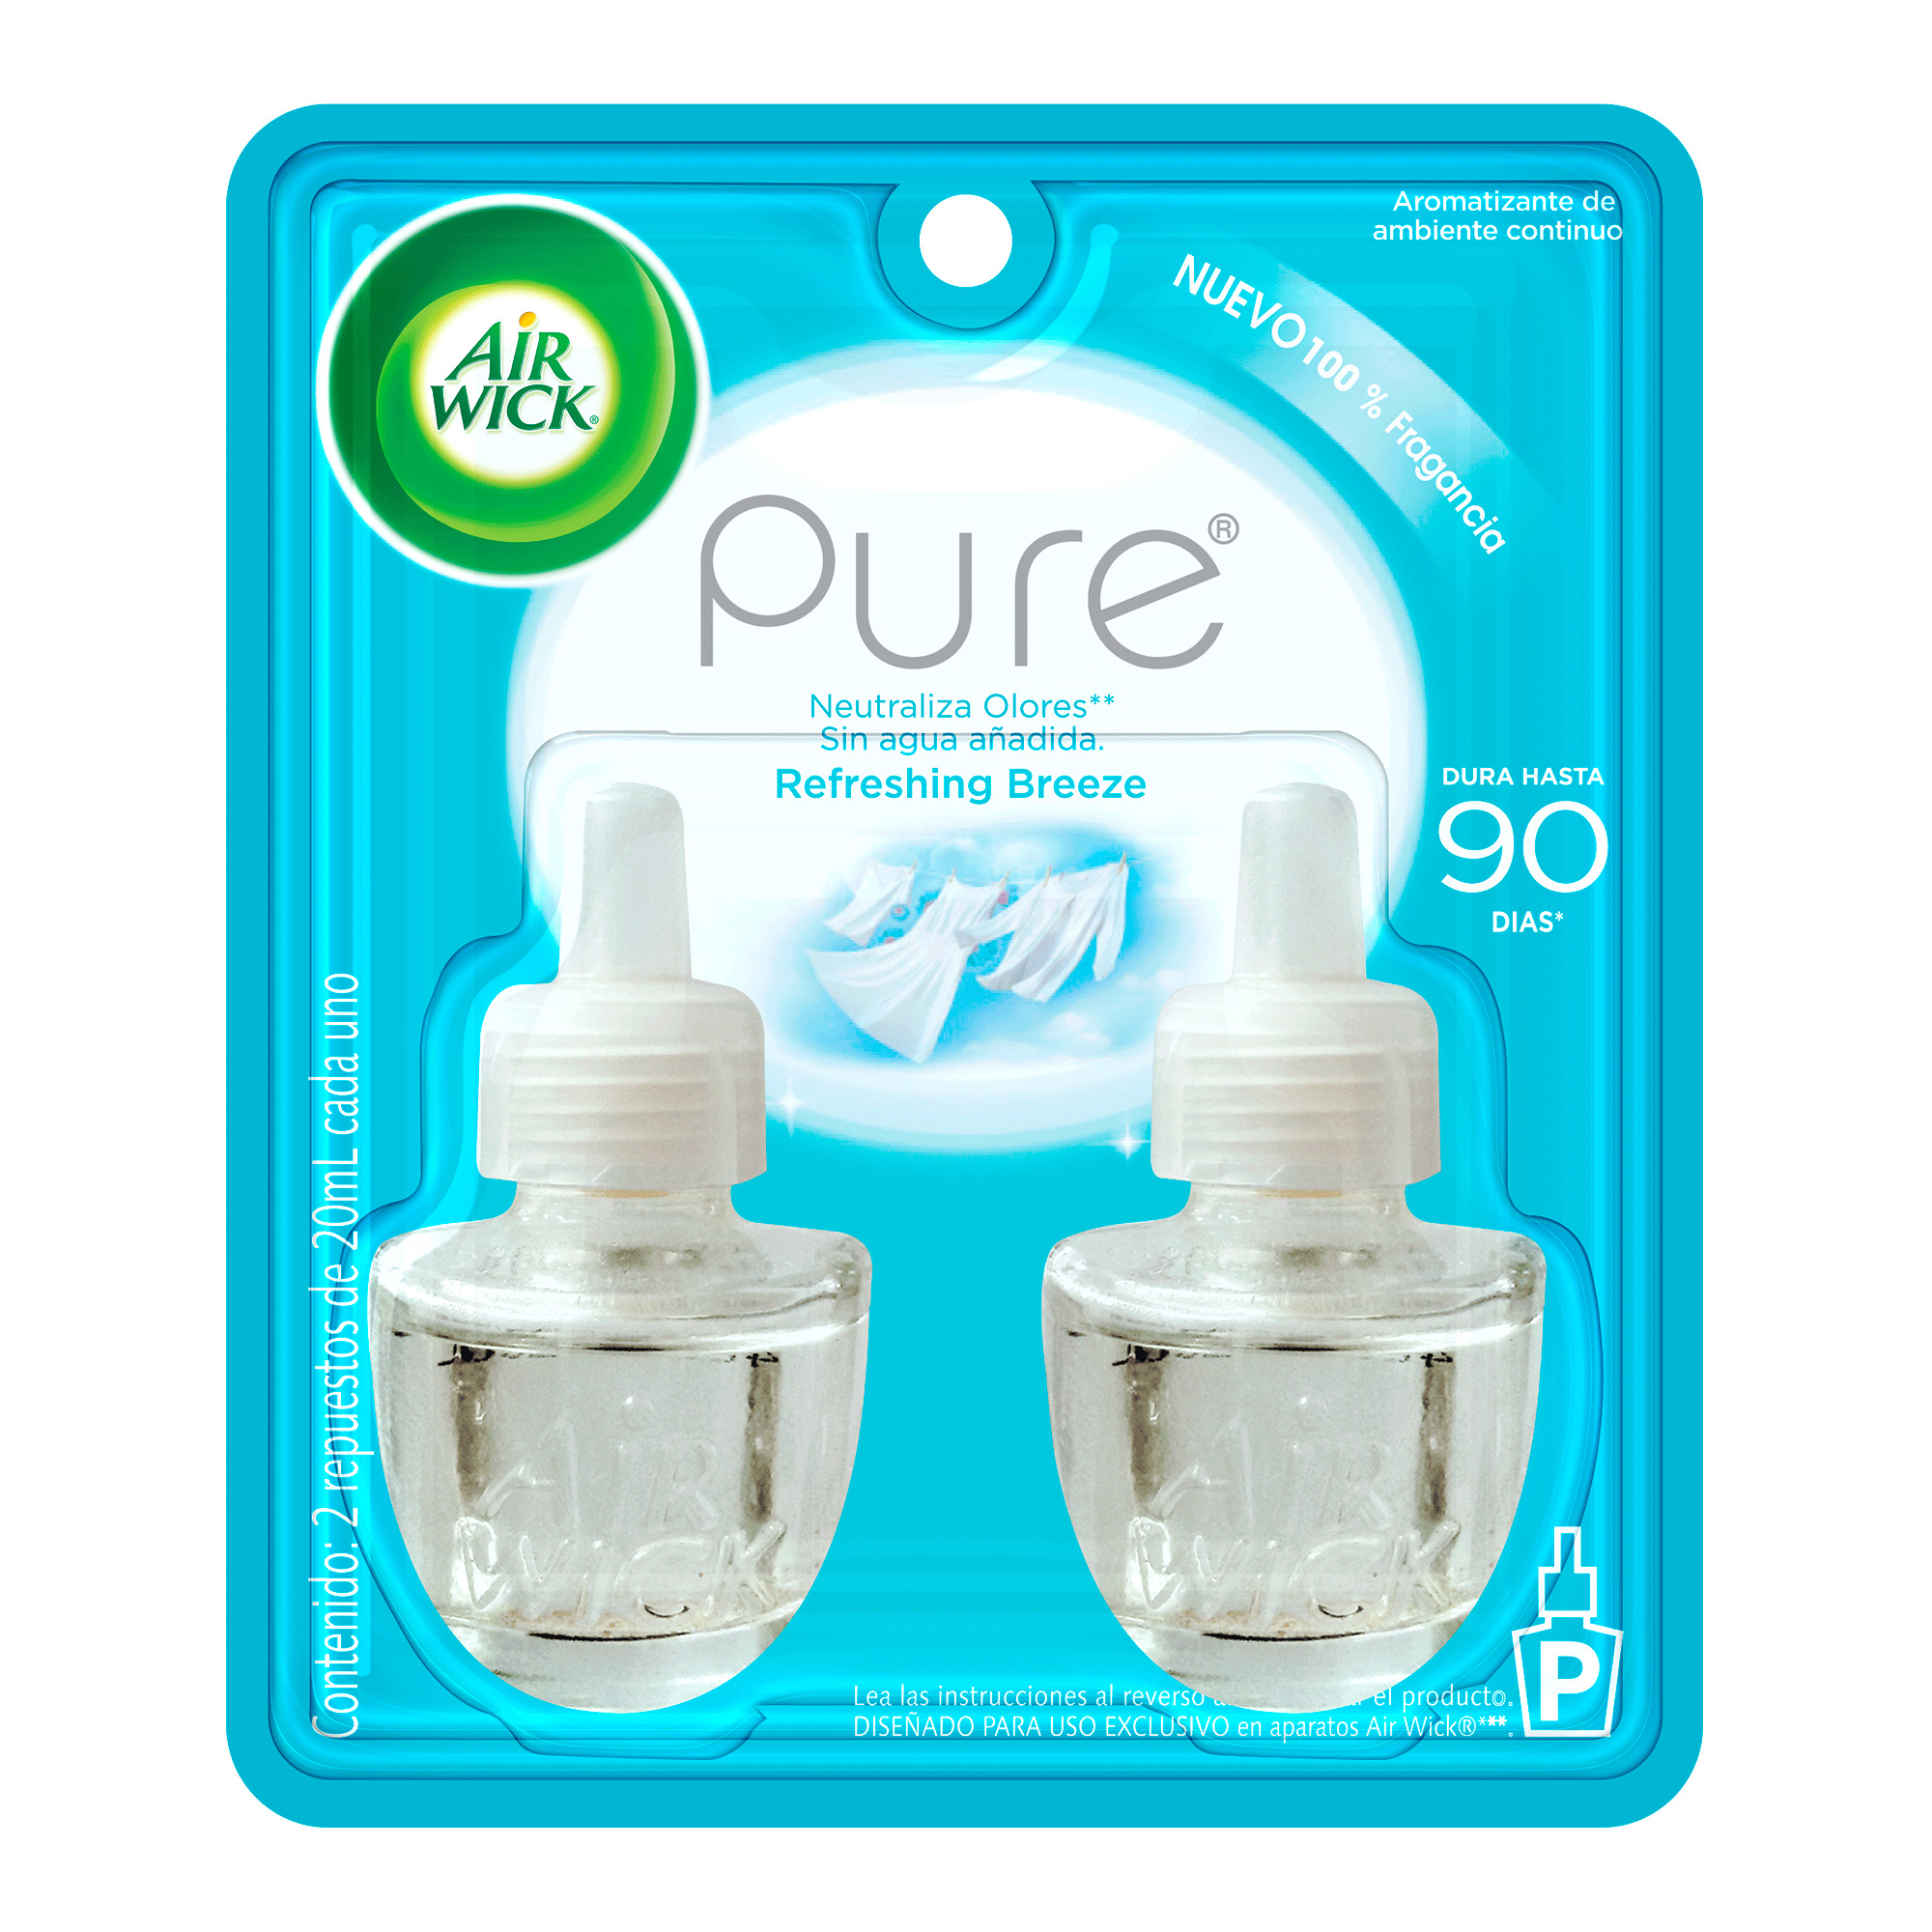 AIR WICK® AROMATIZANTE DE AMBIENTE CONTINUO REFRESHING BREEZE, 2 REPUESTOS DE 20 mL C/U